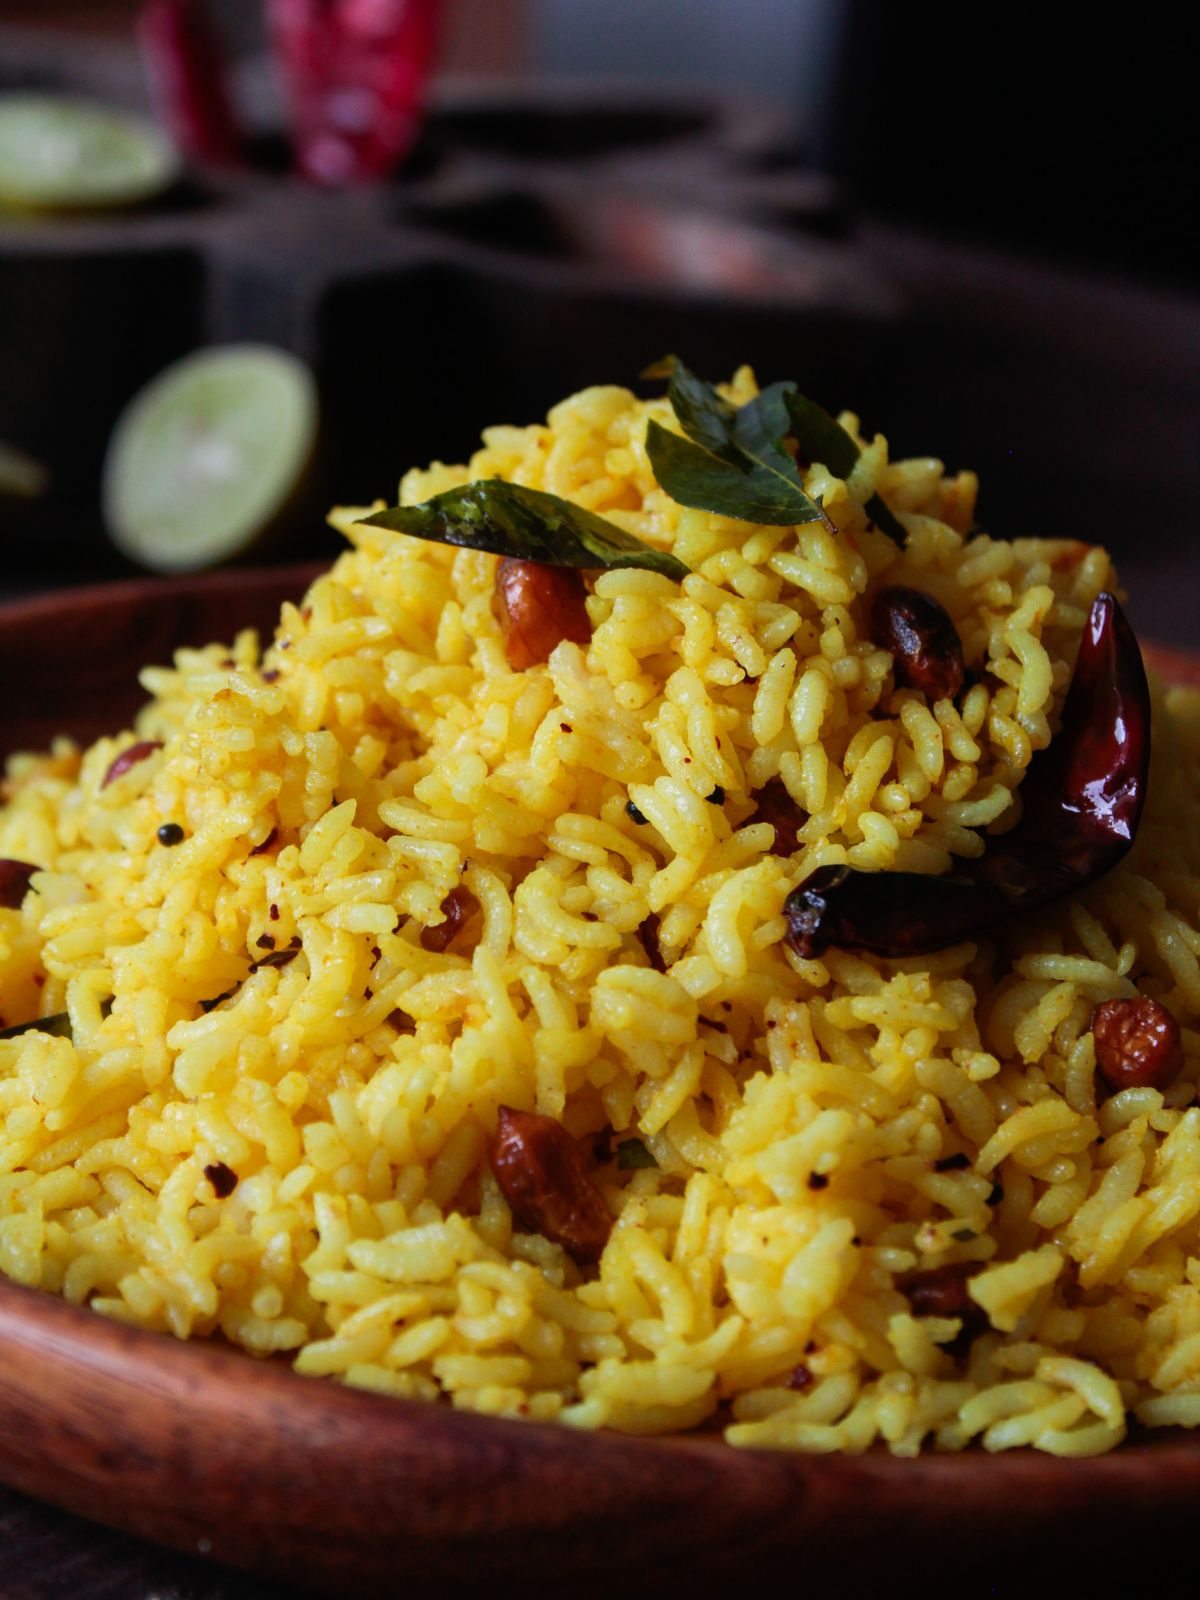 Wooden bowl of yellow rice with peanuts and coriander leaves on top